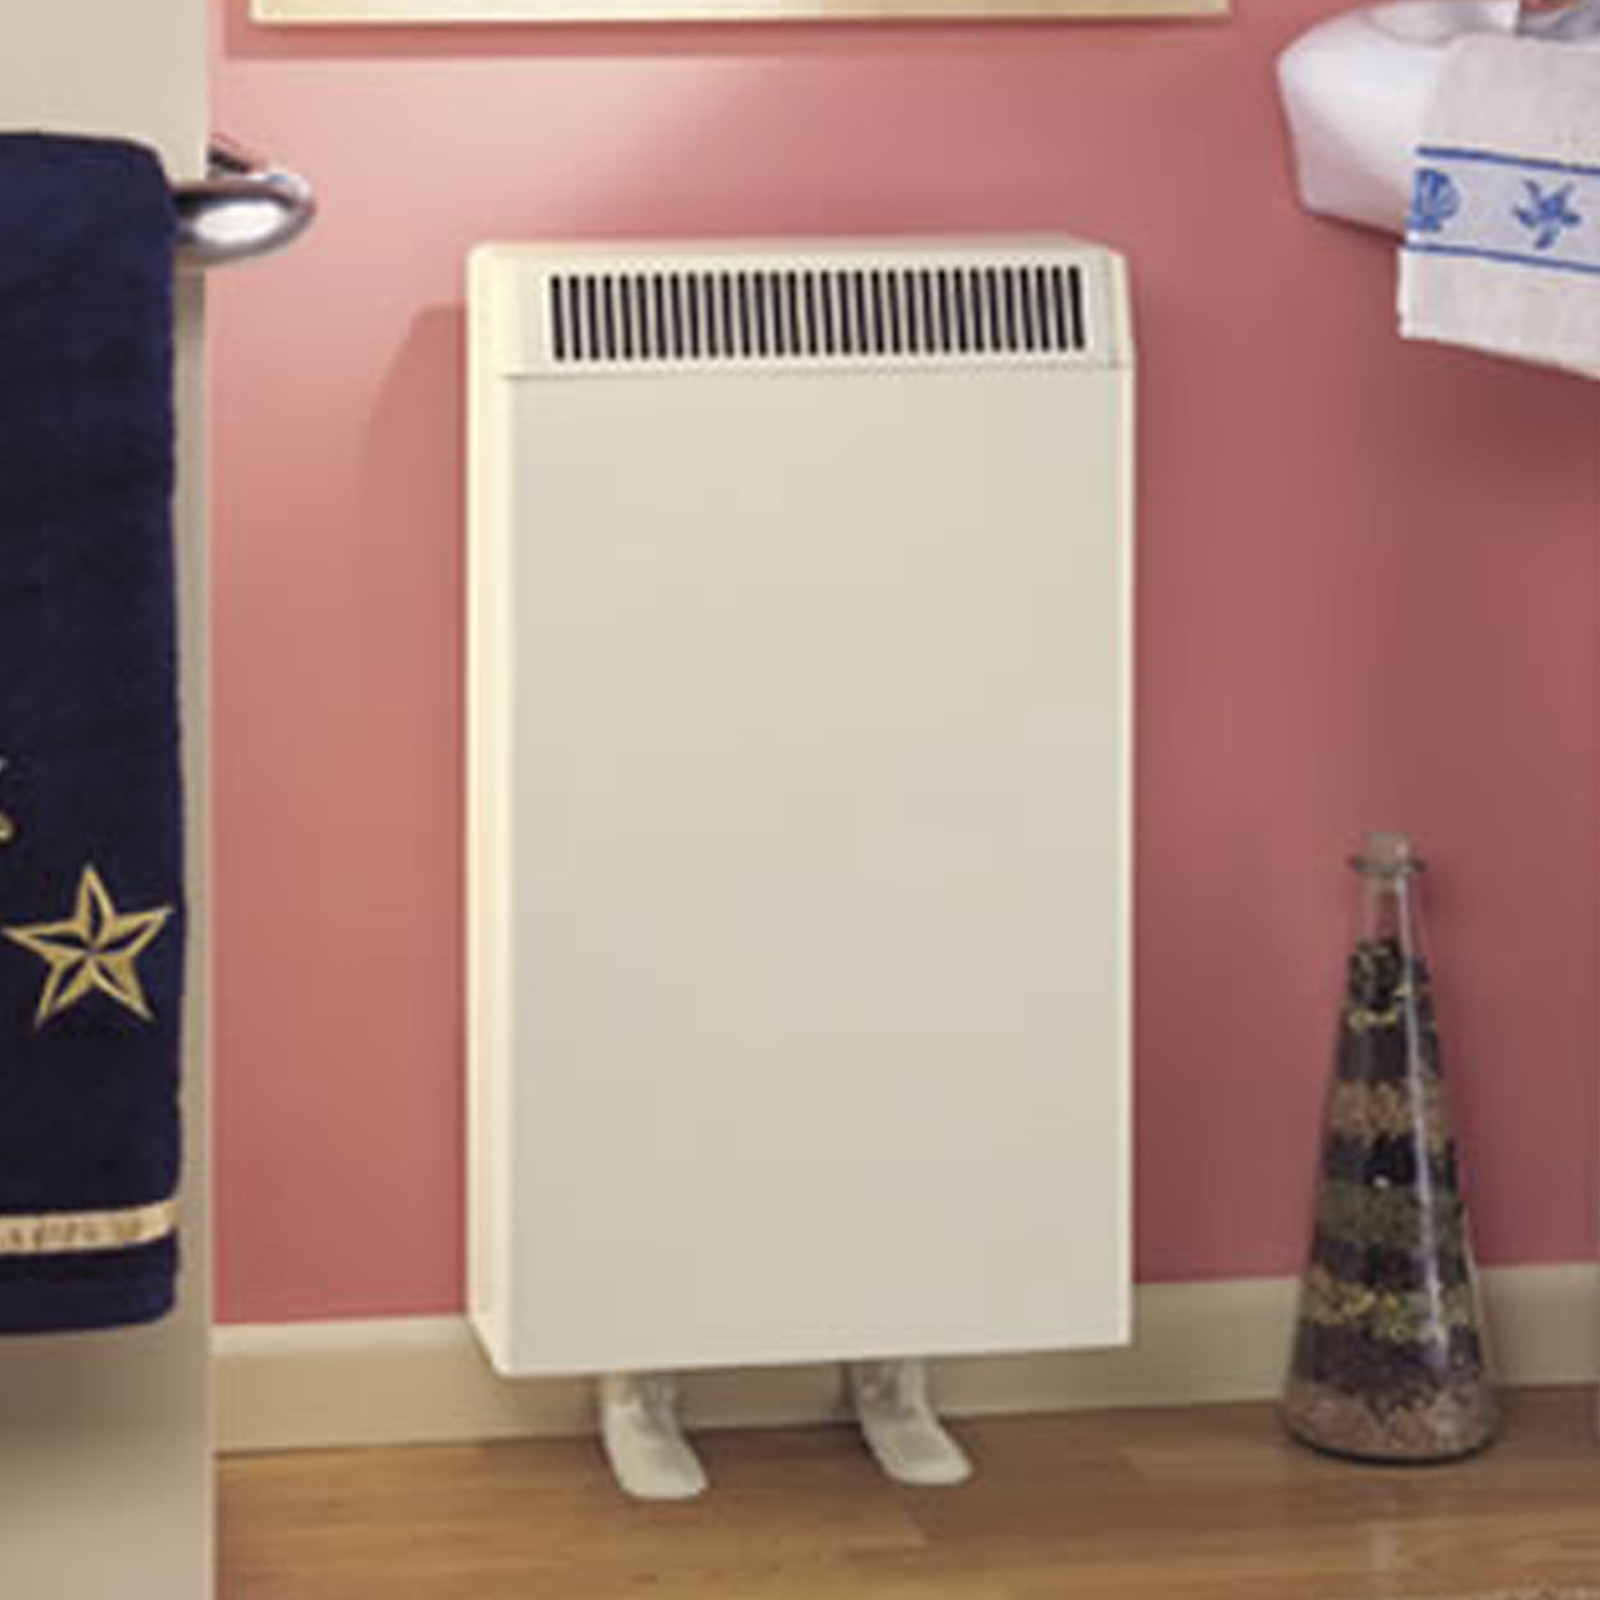 Home heaters storage heaters dimplex combined - Dimplex Xls6 Electric Storage Heater